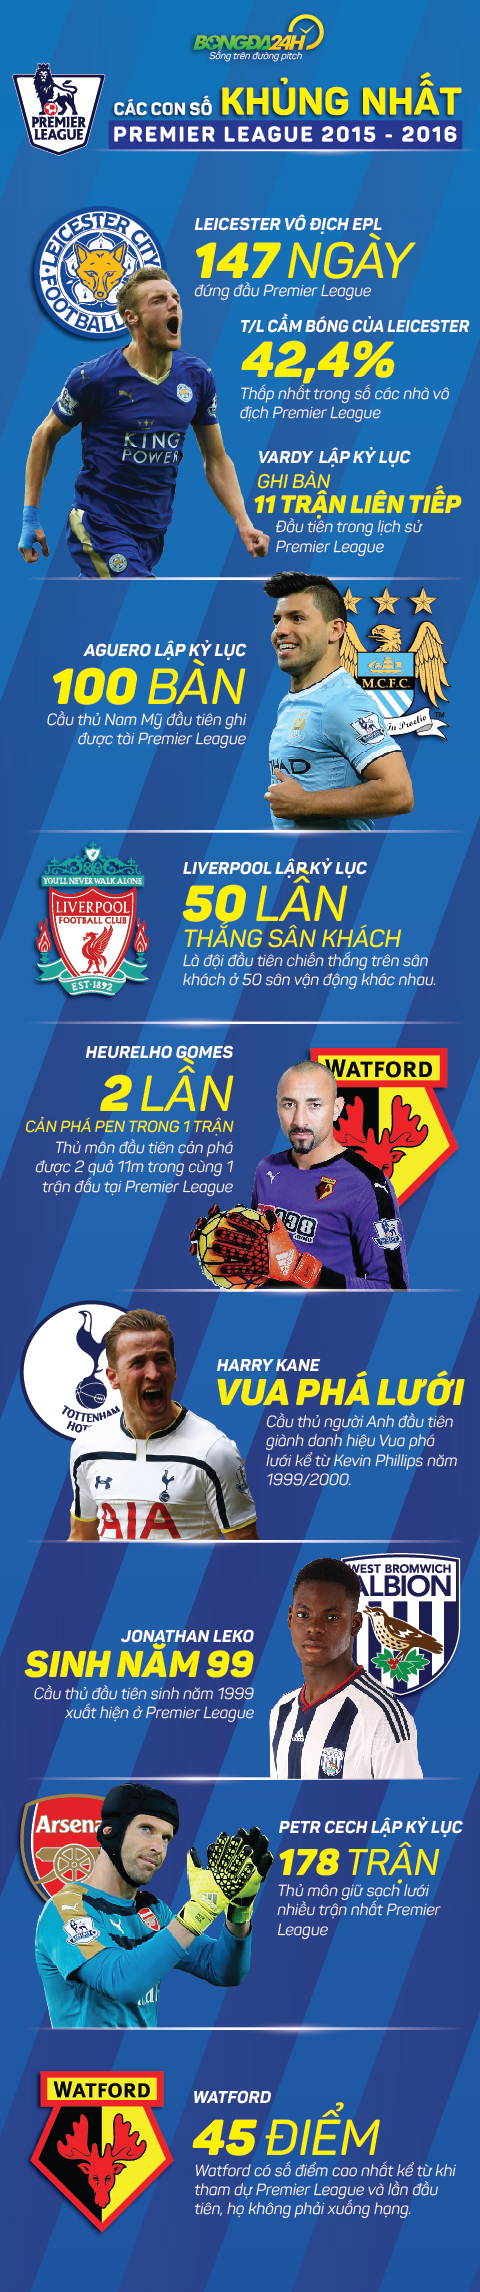 INFOGRAPHIC Cac con so thong ke an tuong nhat Premier League 201516 hinh anh goc